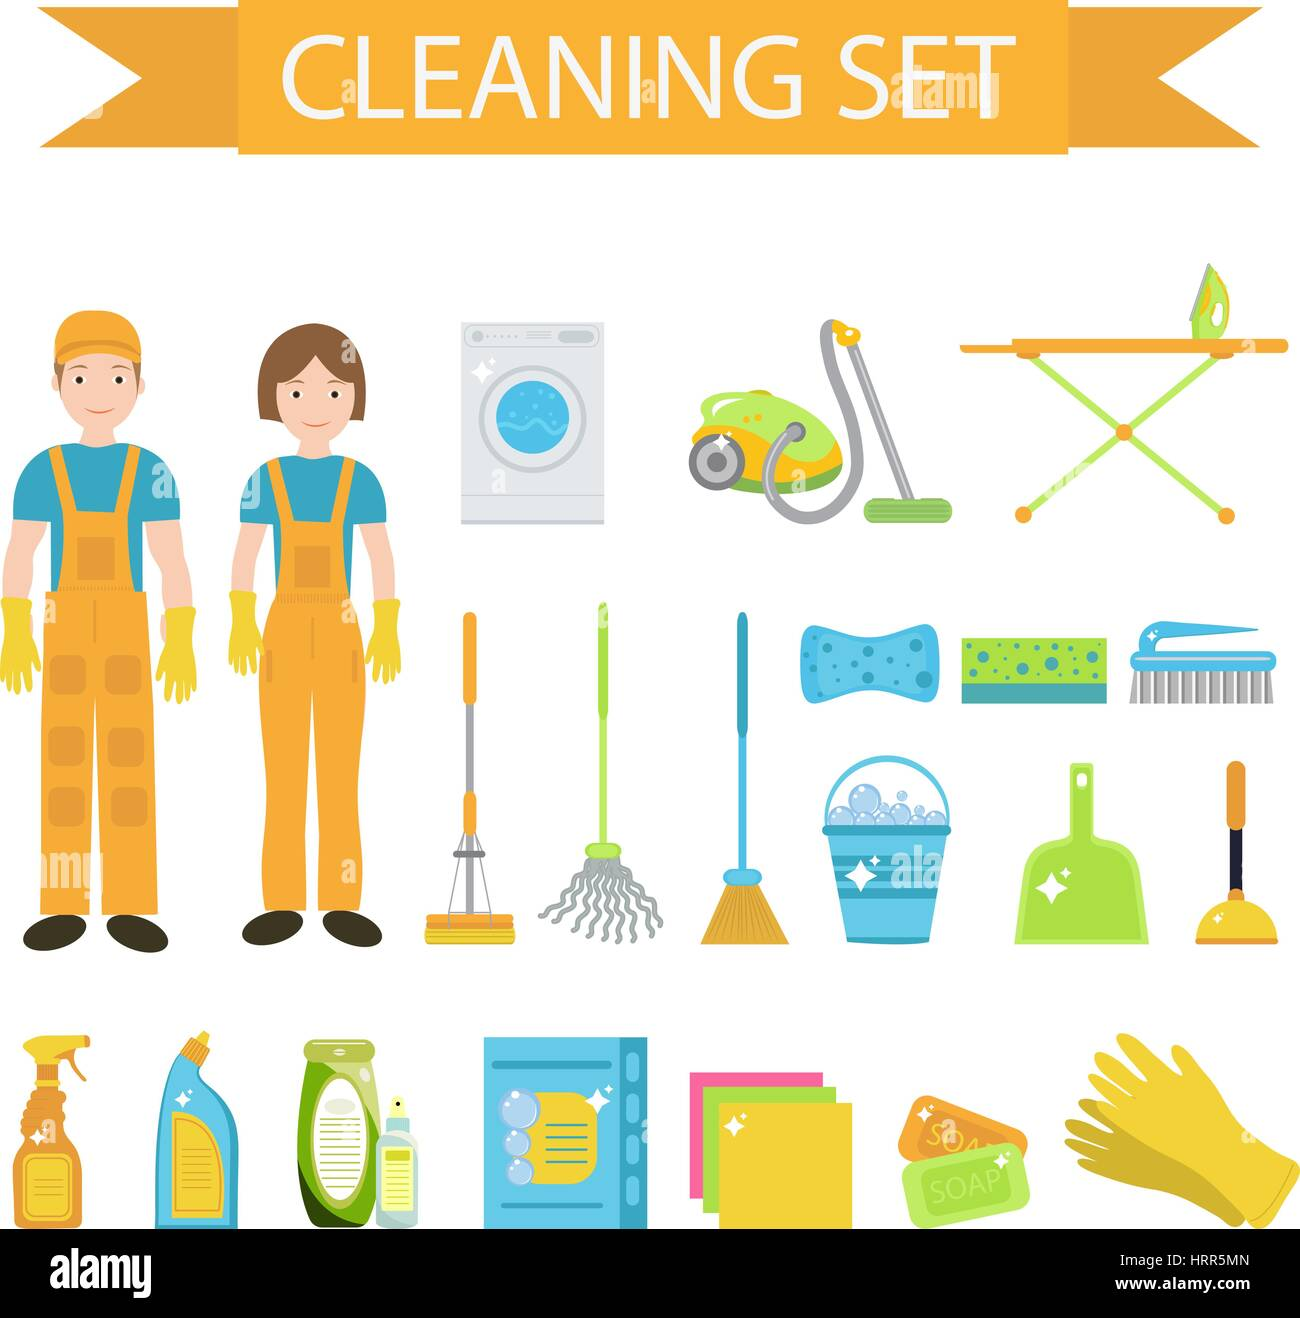 Set of icons for cleaning tools. House cleaning staff. Flat design style. Cleaning design elements. Vector illustration. - Stock Vector